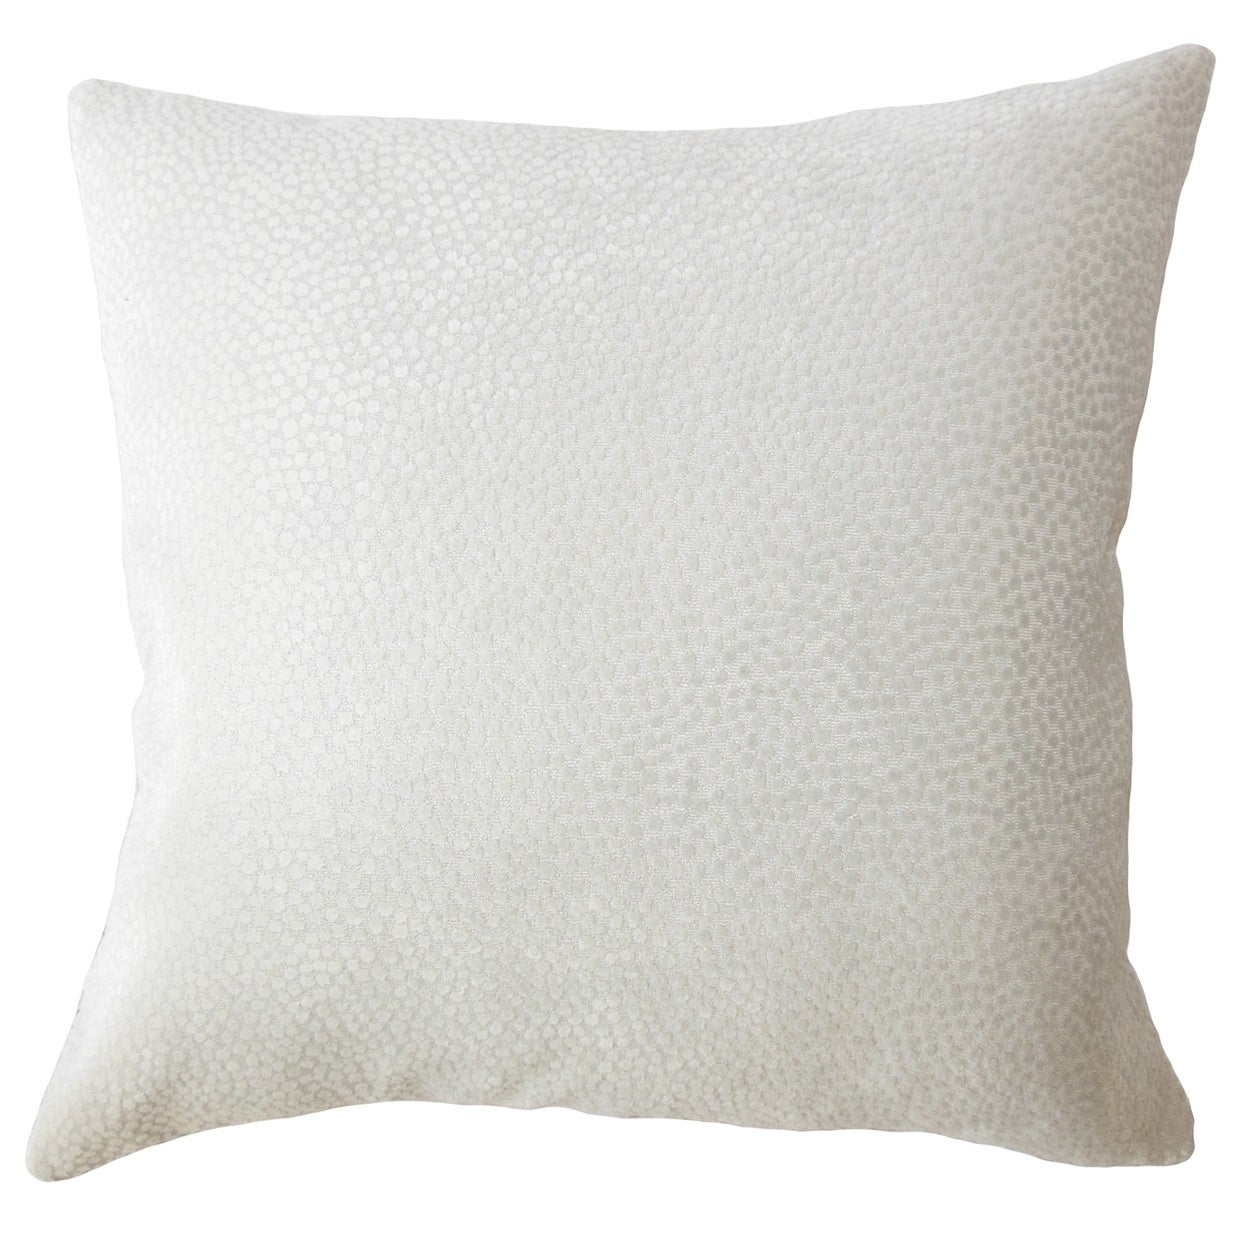 Haines Solid Down Filled Throw Pillow in Mushroom (Square - 22 x 22)